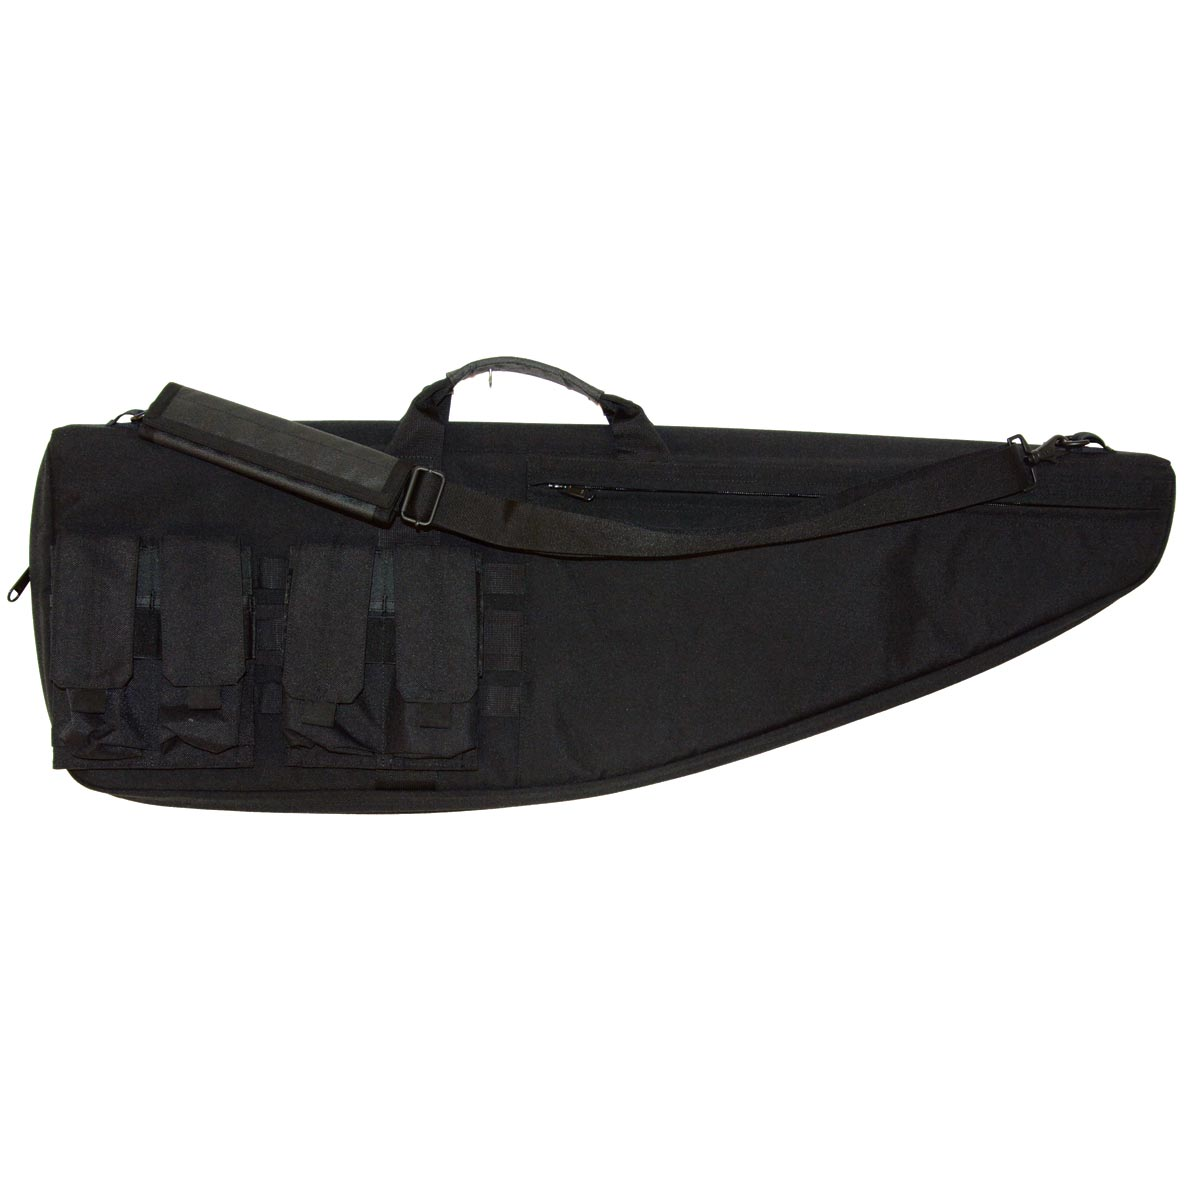 Boyt TAC336 36 Inch Profile Shaped Tactical Rifle/Carbine Gun Case